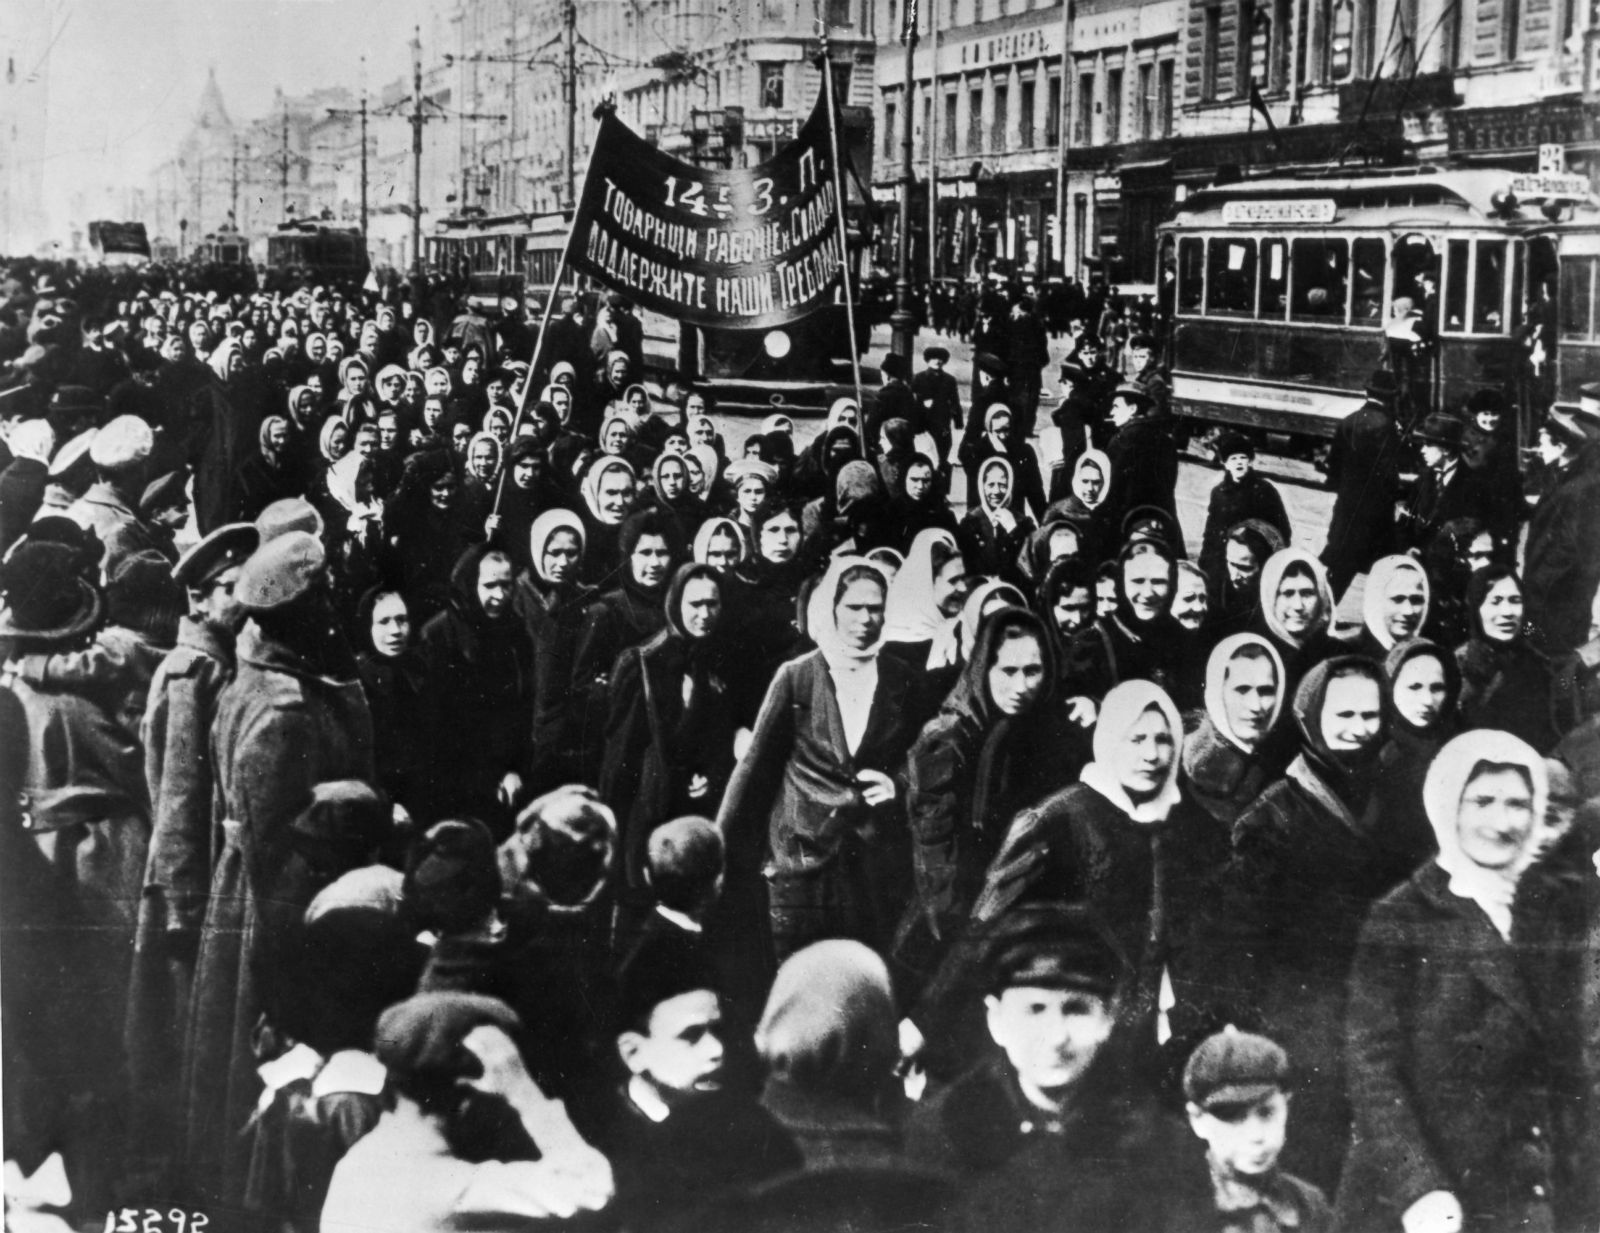 Pictures of the russian revolution The Bolshevik October Revolution - Photo Essays - TIME